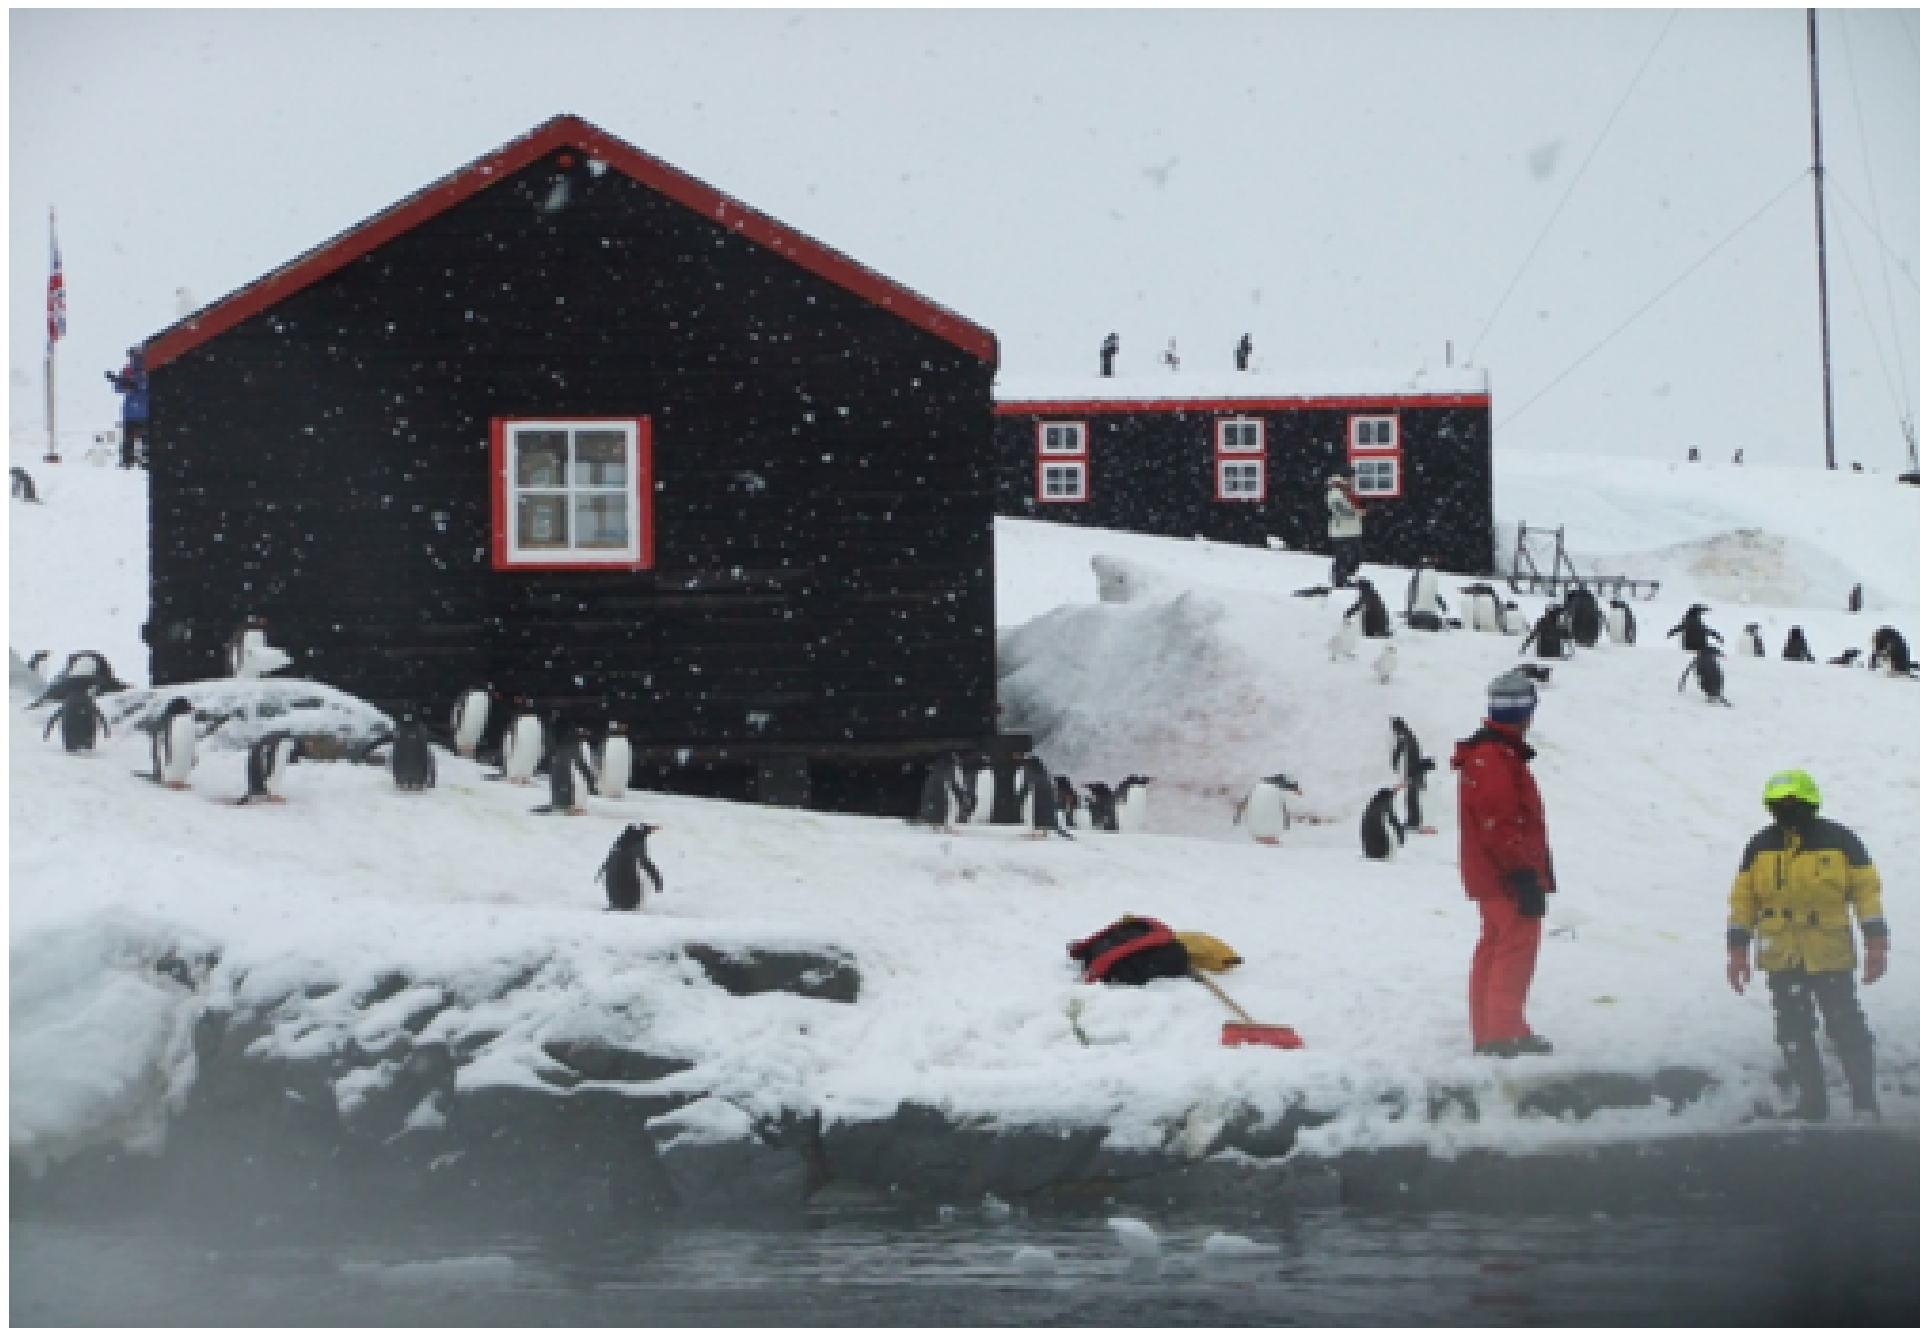 Sending a Postcard from Port Lockroy